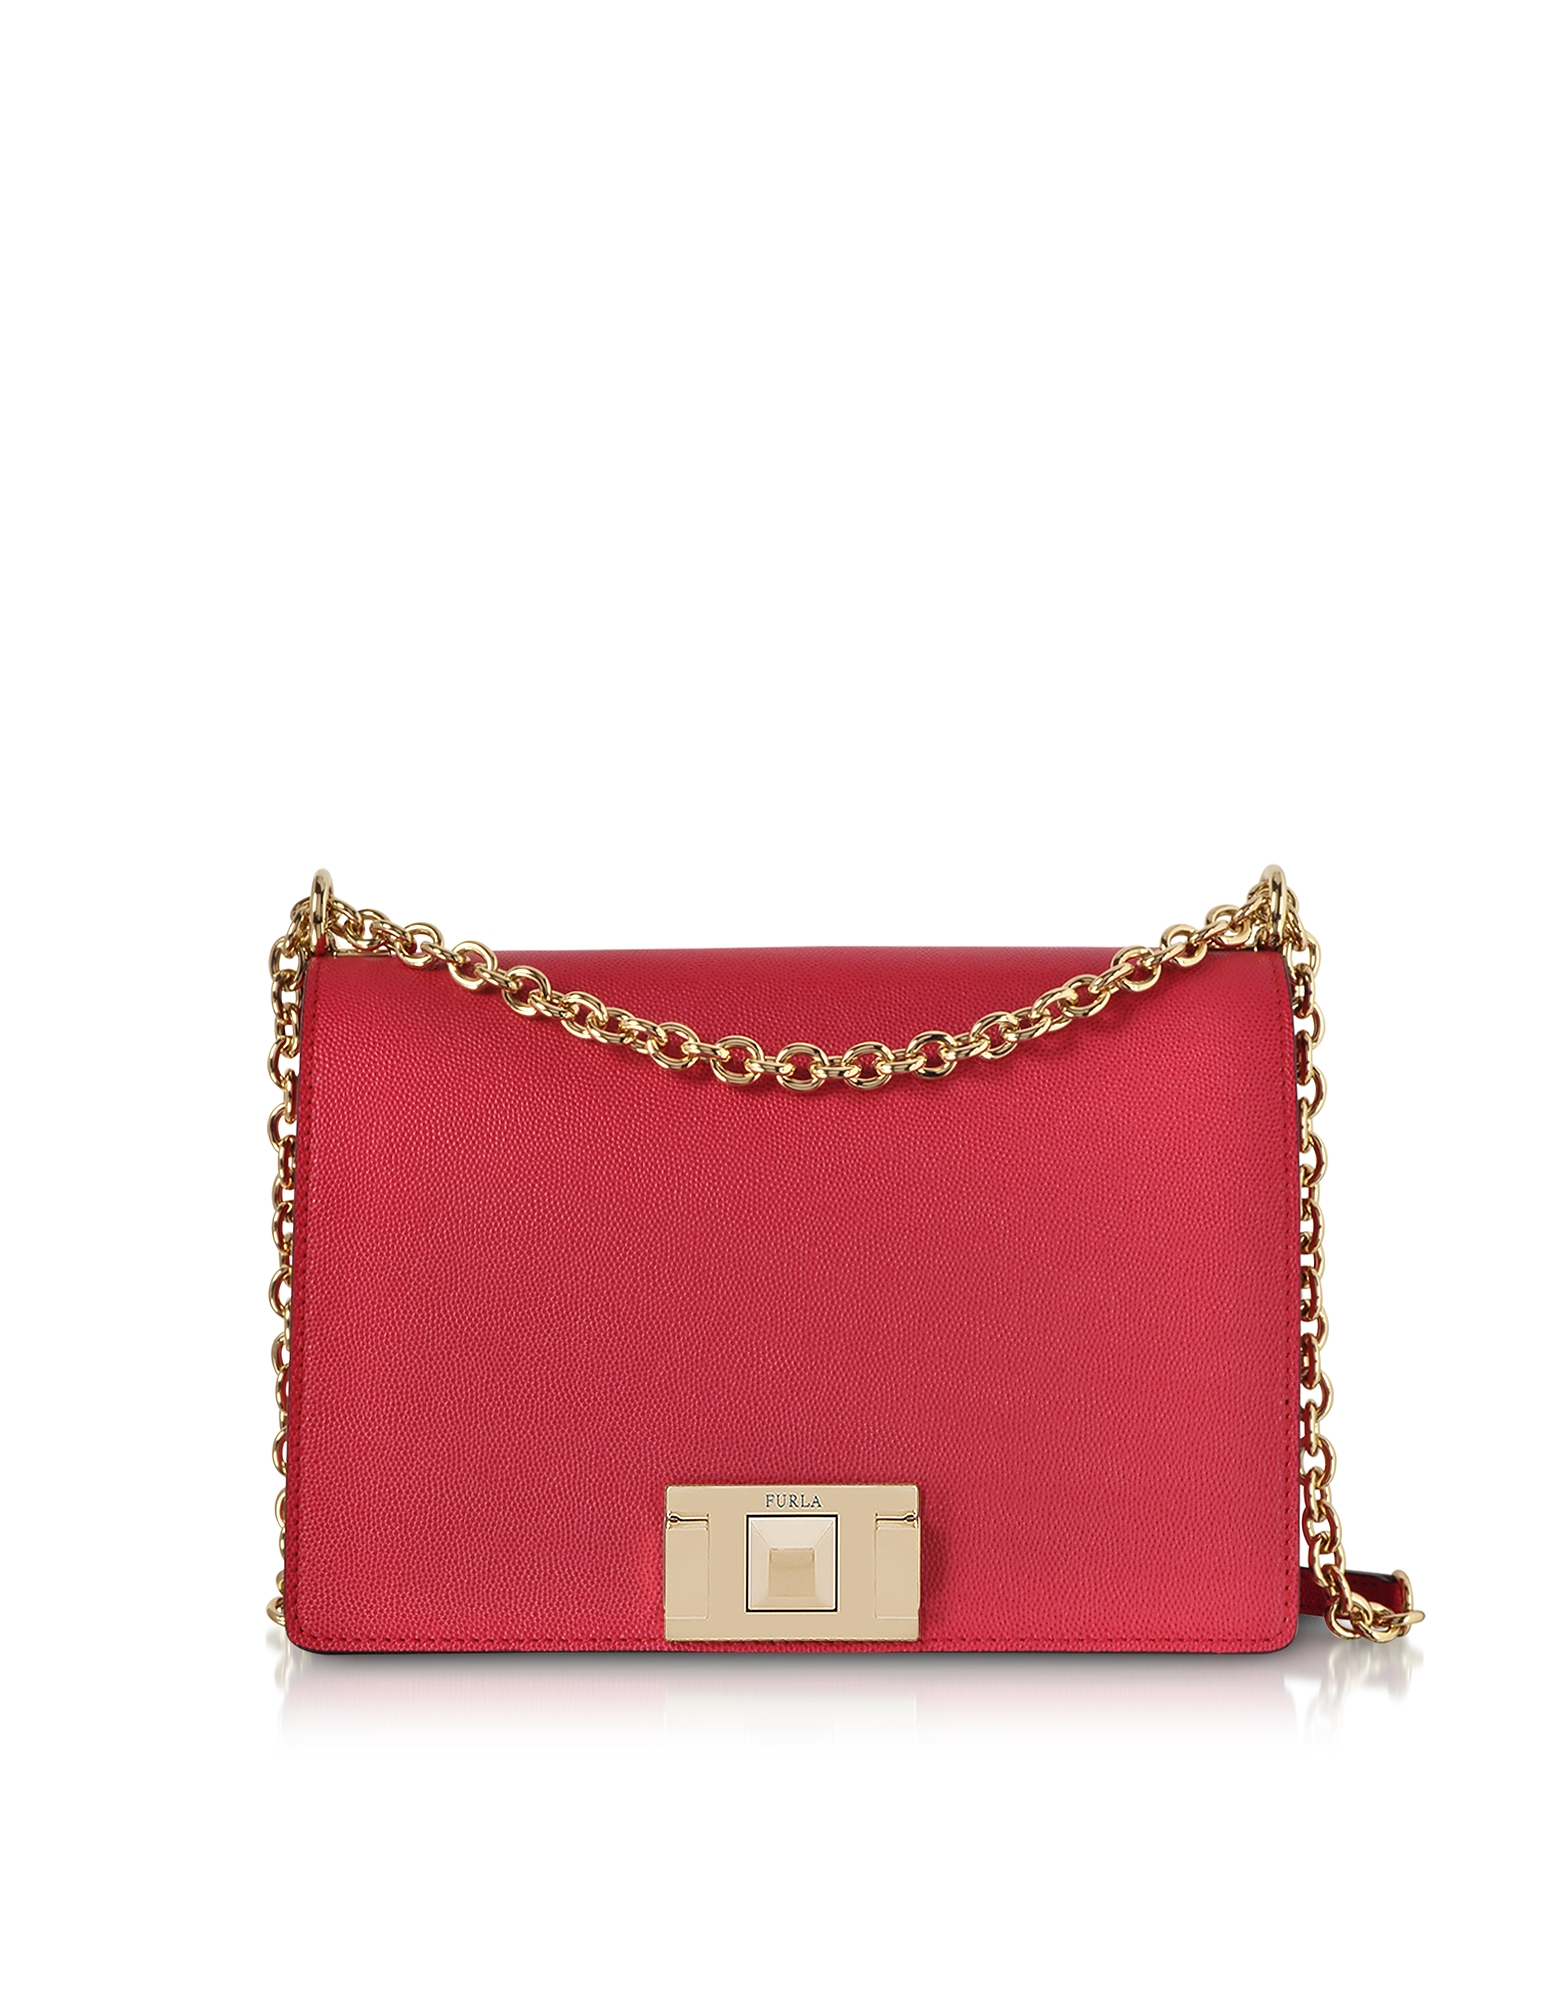 Furla Handbags, Mimì S Crossbody Bag